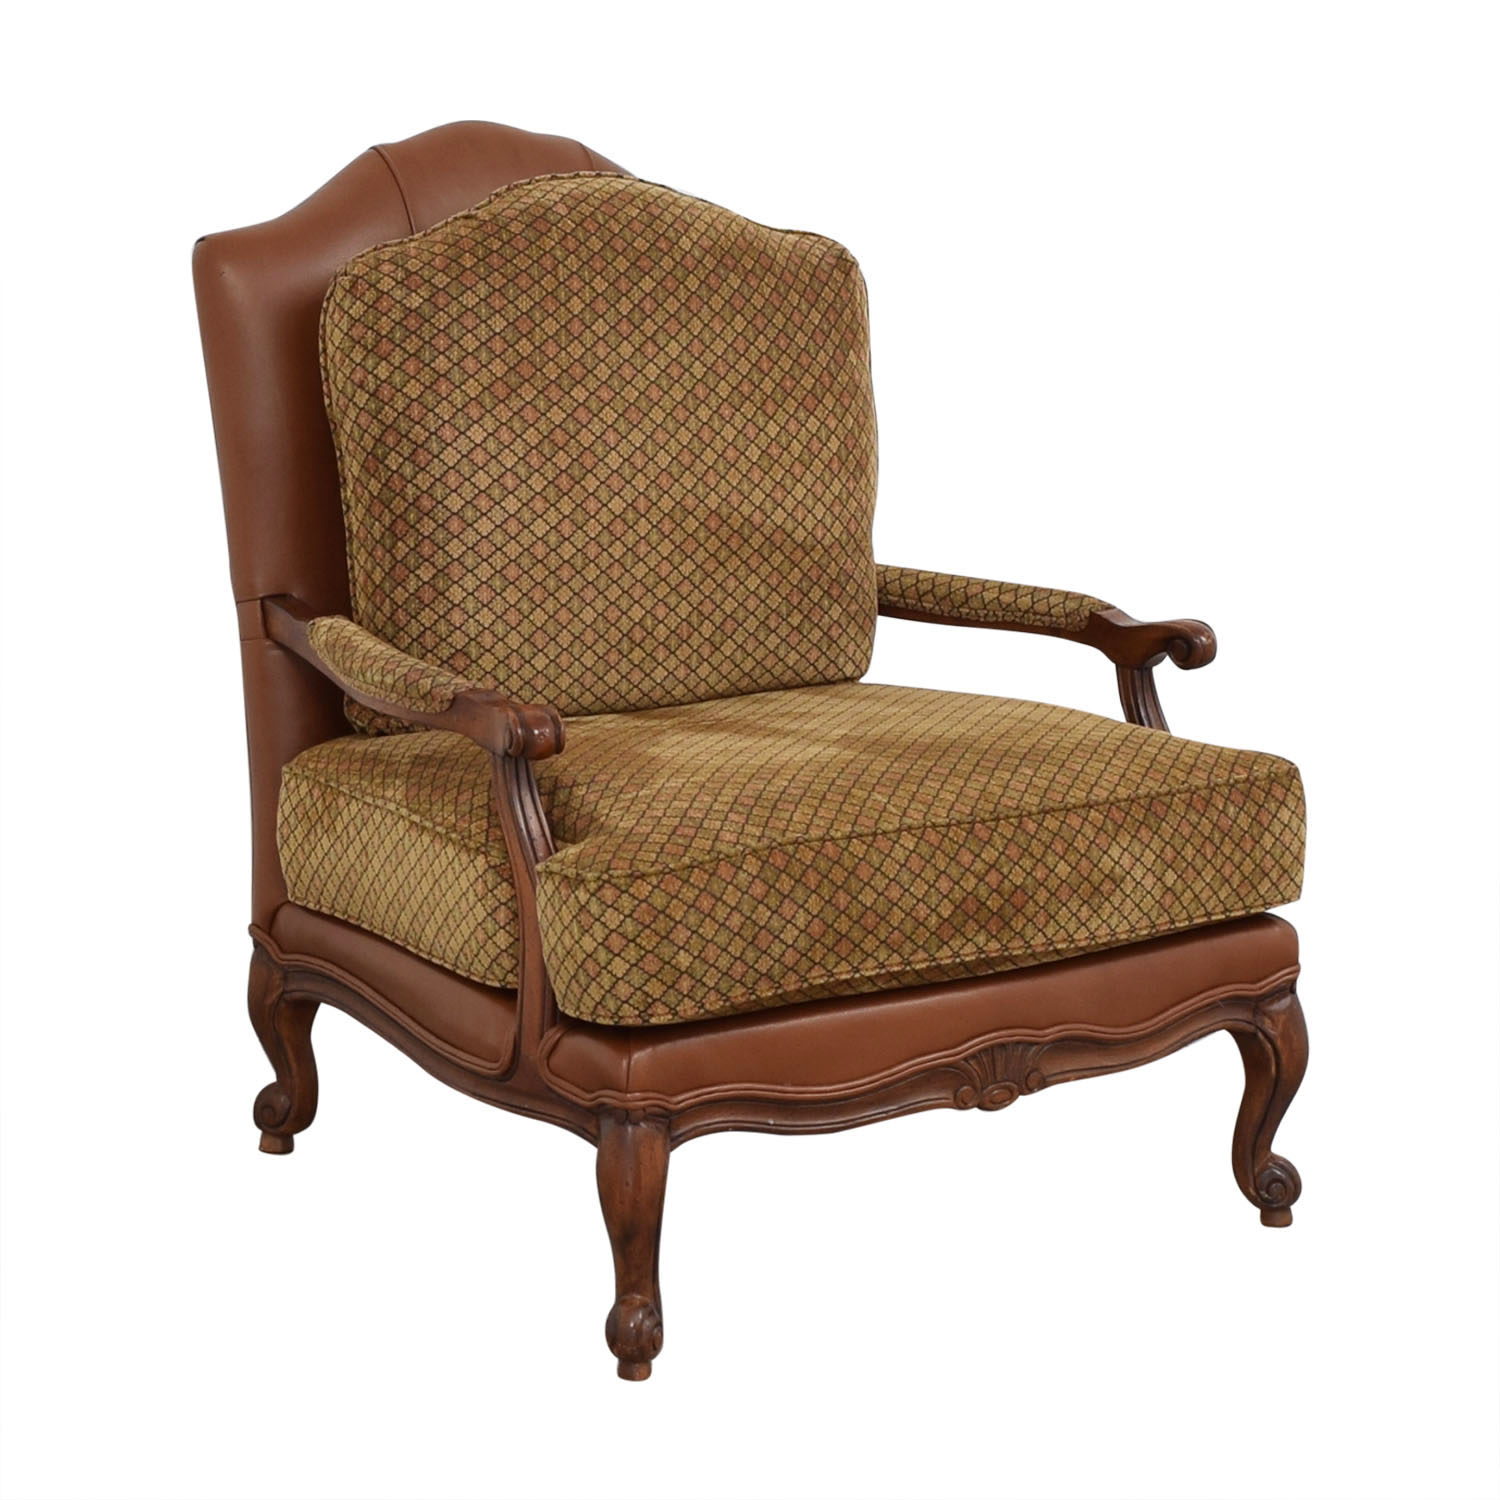 Ethan Allen Ethan Allen Upholstered Accent Chair on sale